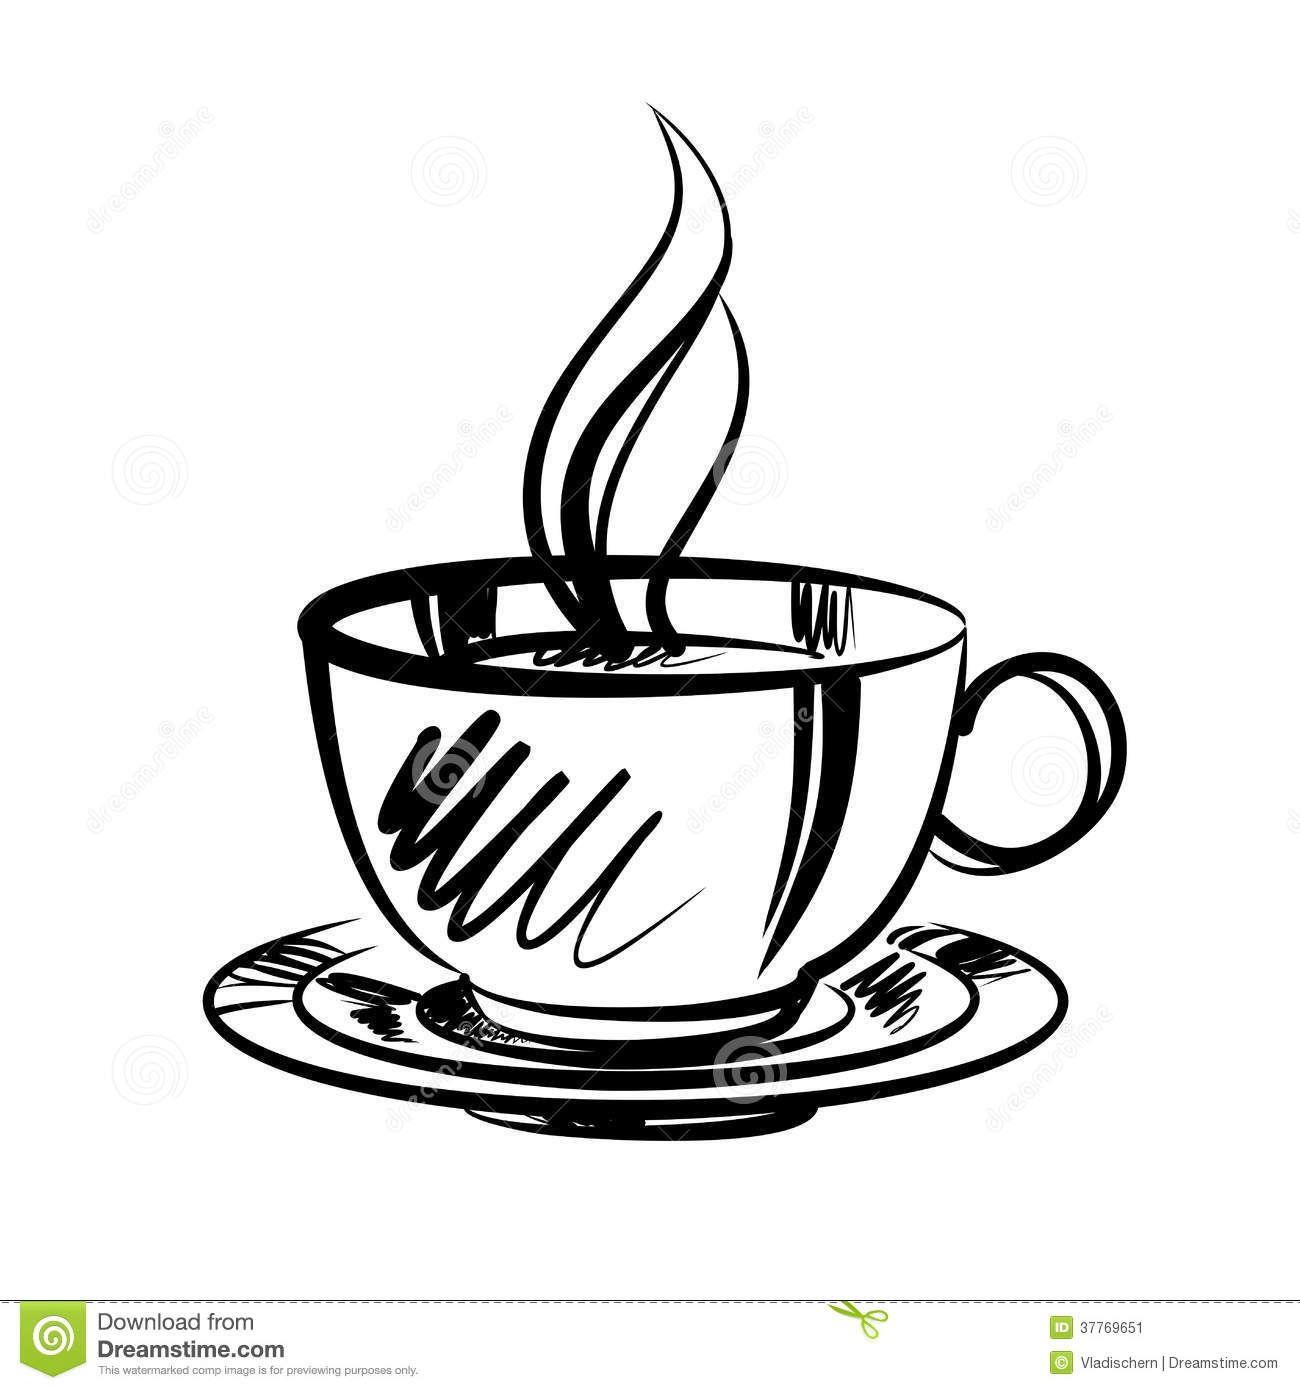 35++ Coffee themed coloring pages ideas in 2021